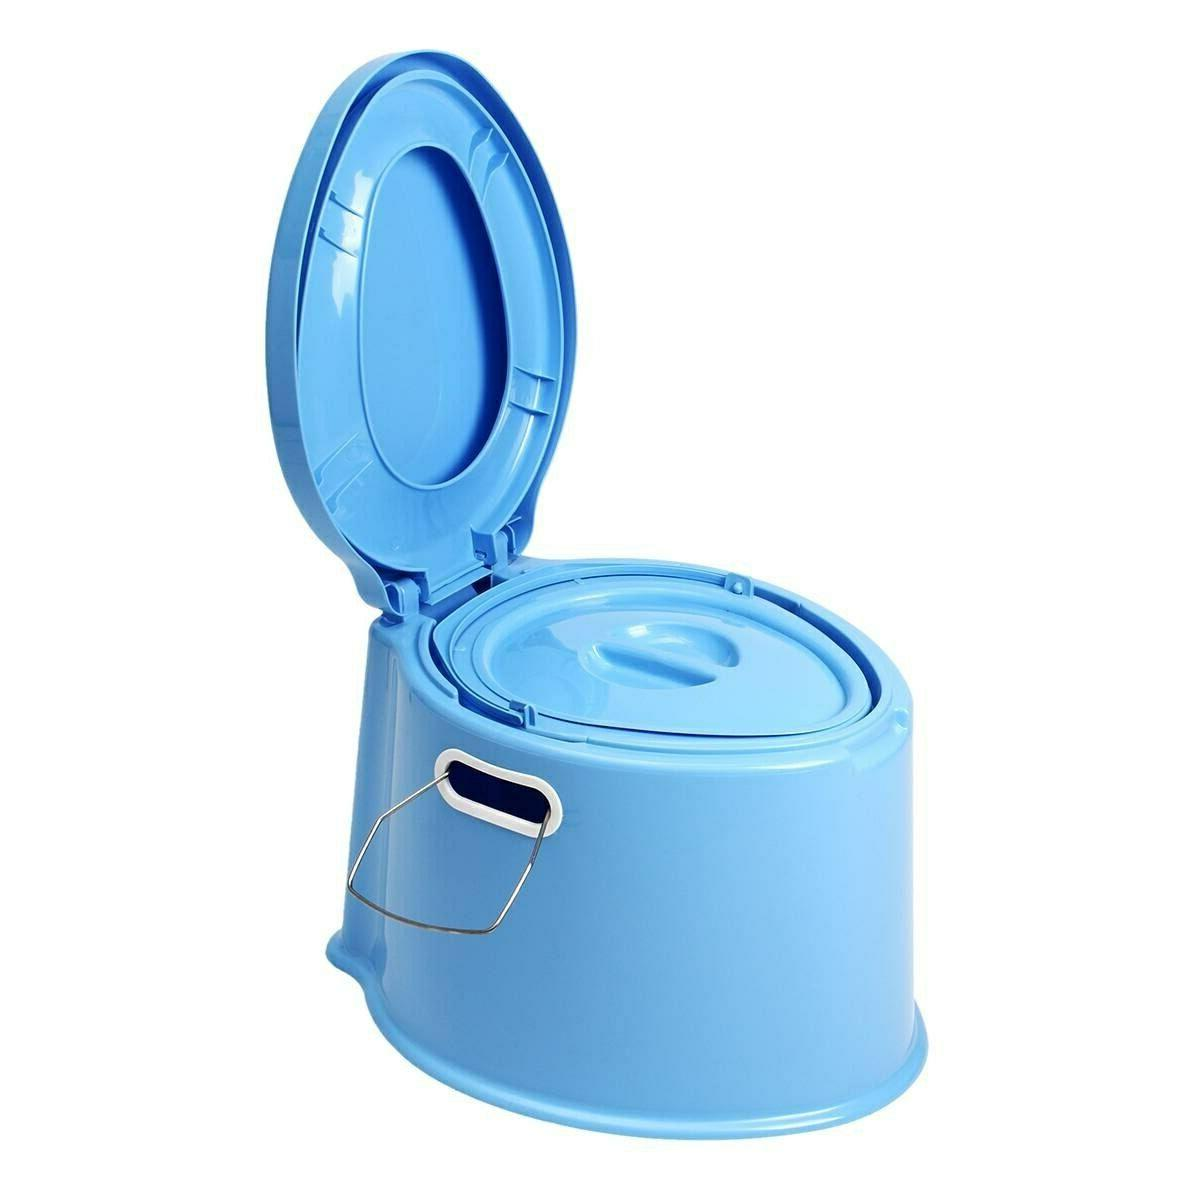 4 Seat Flush Hiking Outdoor Potty